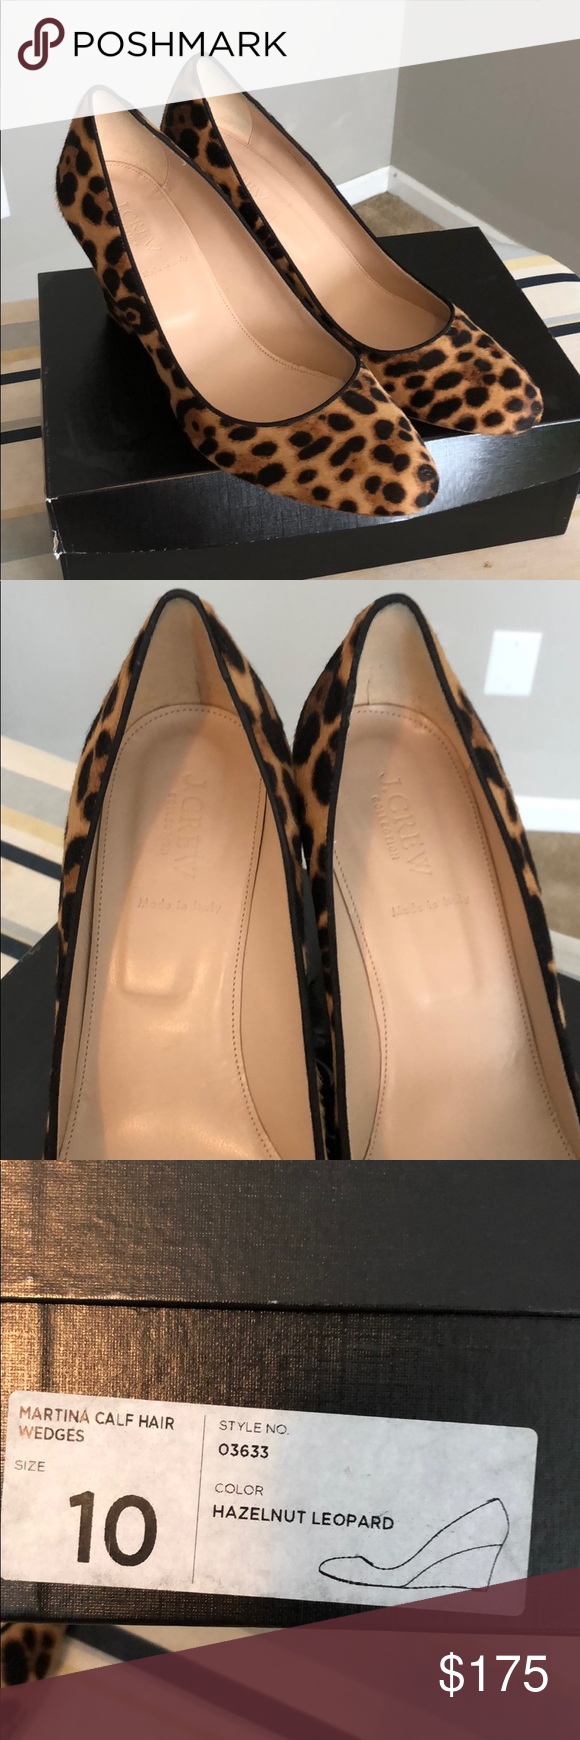 52a6f919272 J. Crew Martina Calf Hair Wedges Like new J. Crew Martina Calf hair wedges  in hazelnut leopard. Worn once. Beautiful shoes! J. Crew Shoes Wedges